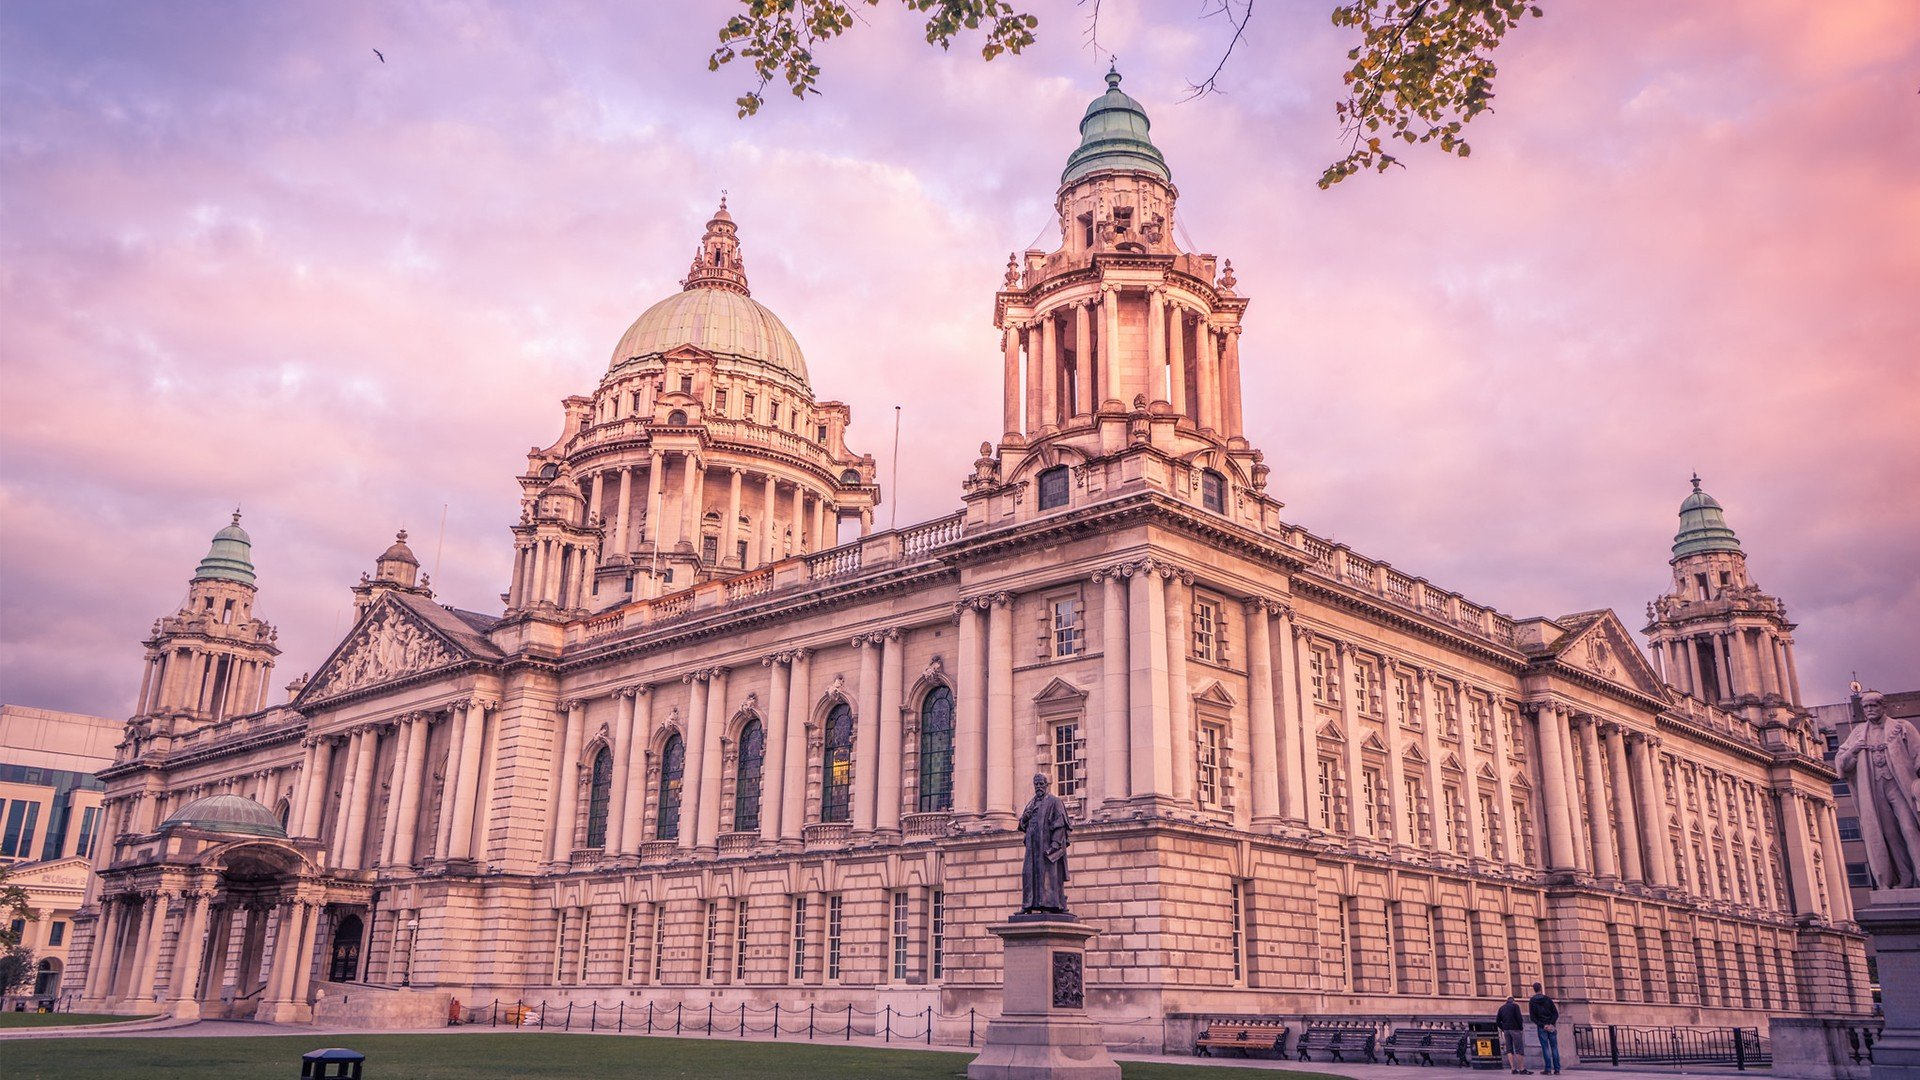 Belfast City hall Wallpapers HD Desktop and Mobile Backgrounds 1920x1080